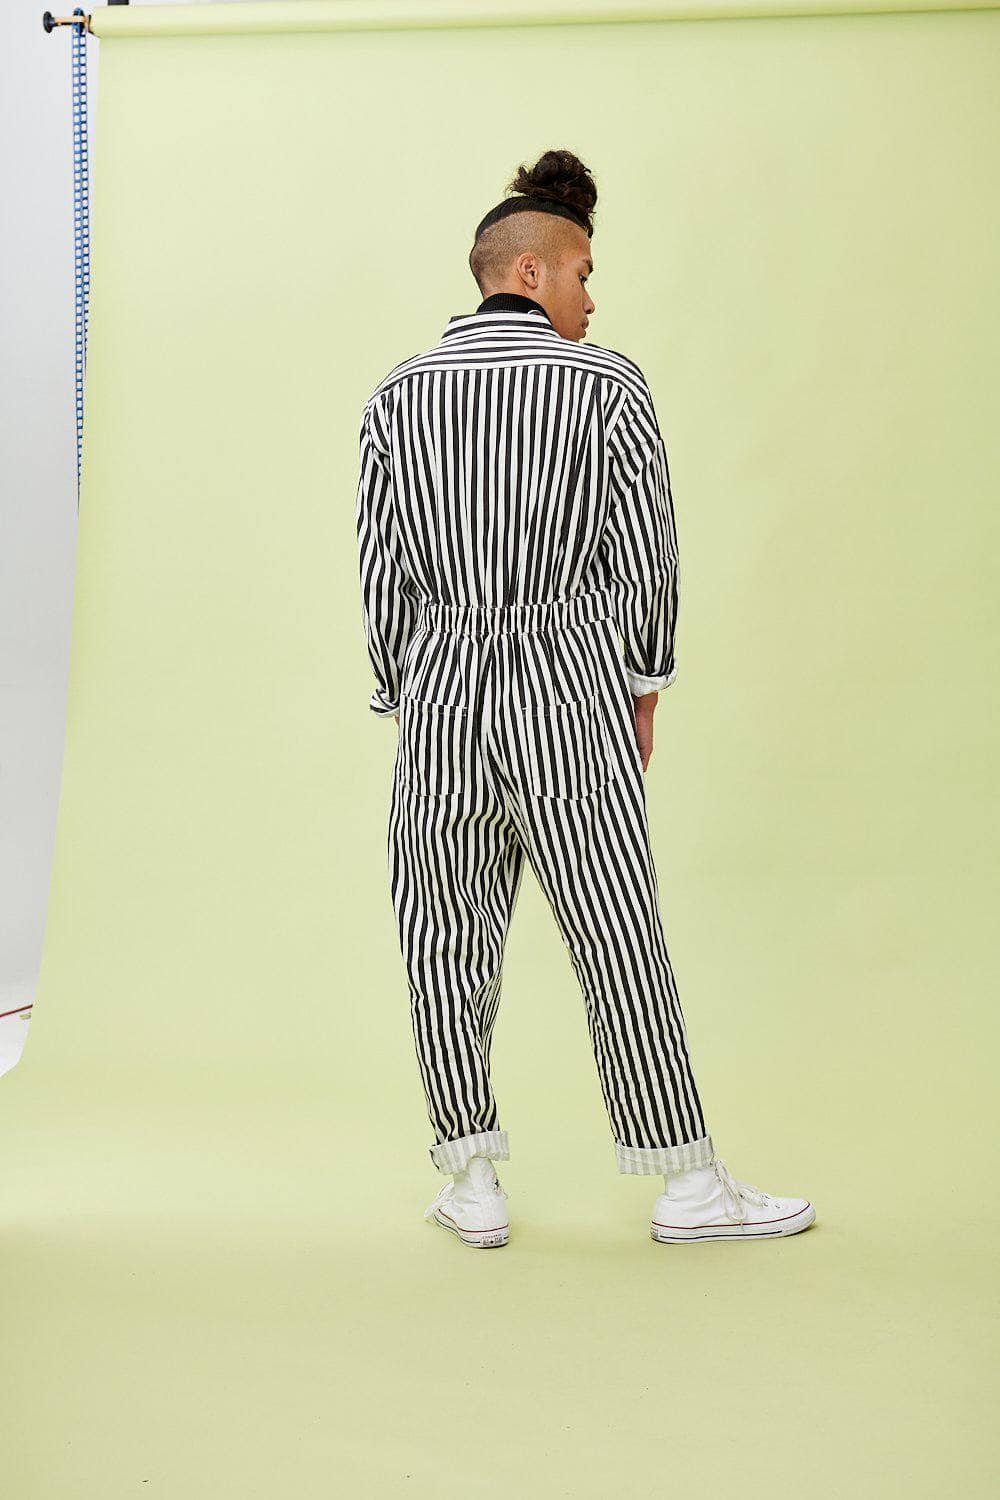 Lucy & Yak Boilersuit 'Carmen' Boilersuit in Black and White Stripe